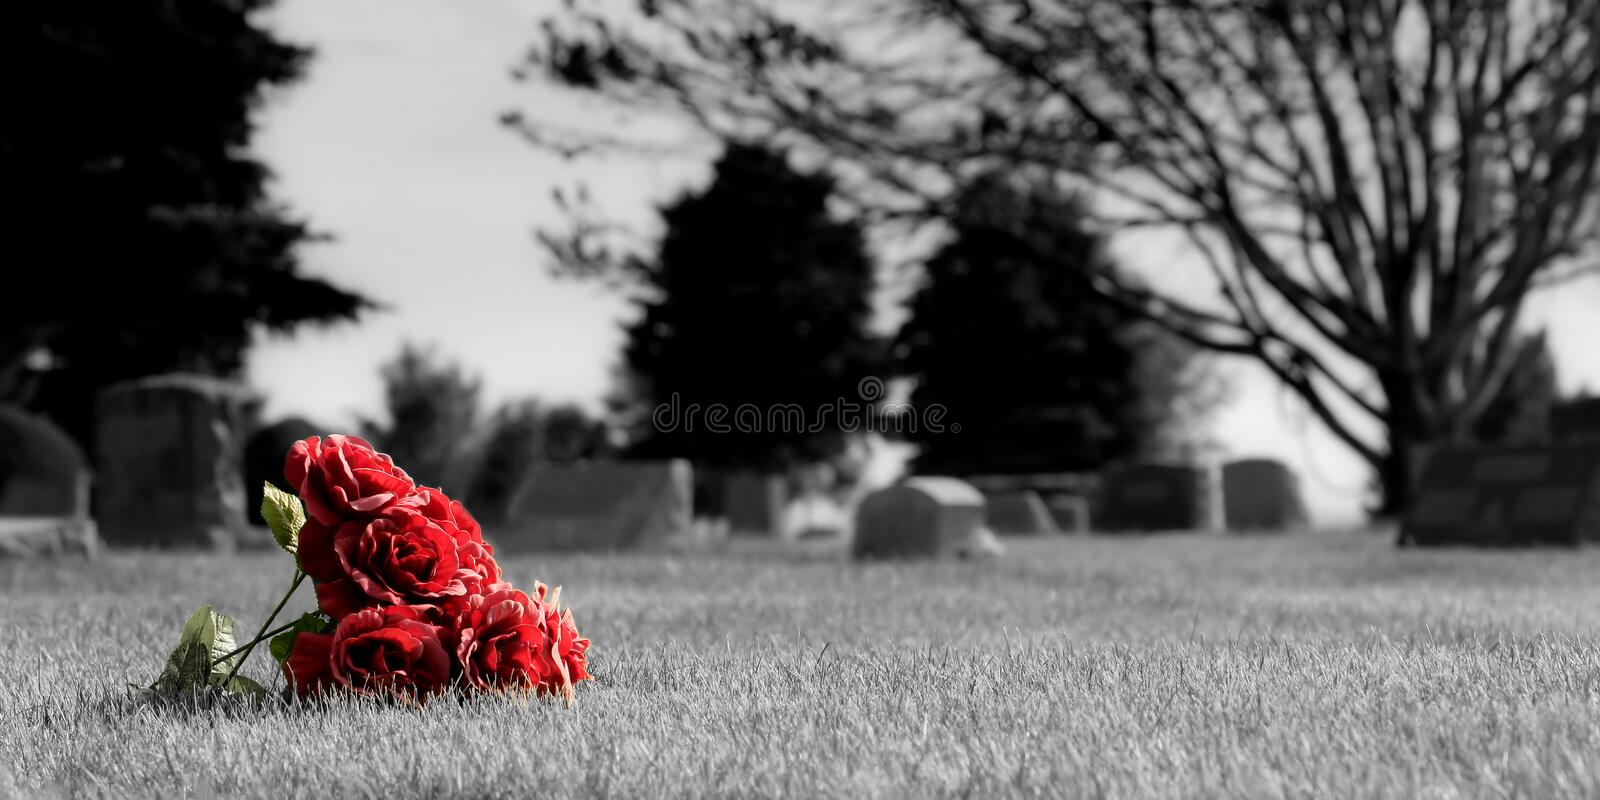 Cemetery flowers royalty free stock image